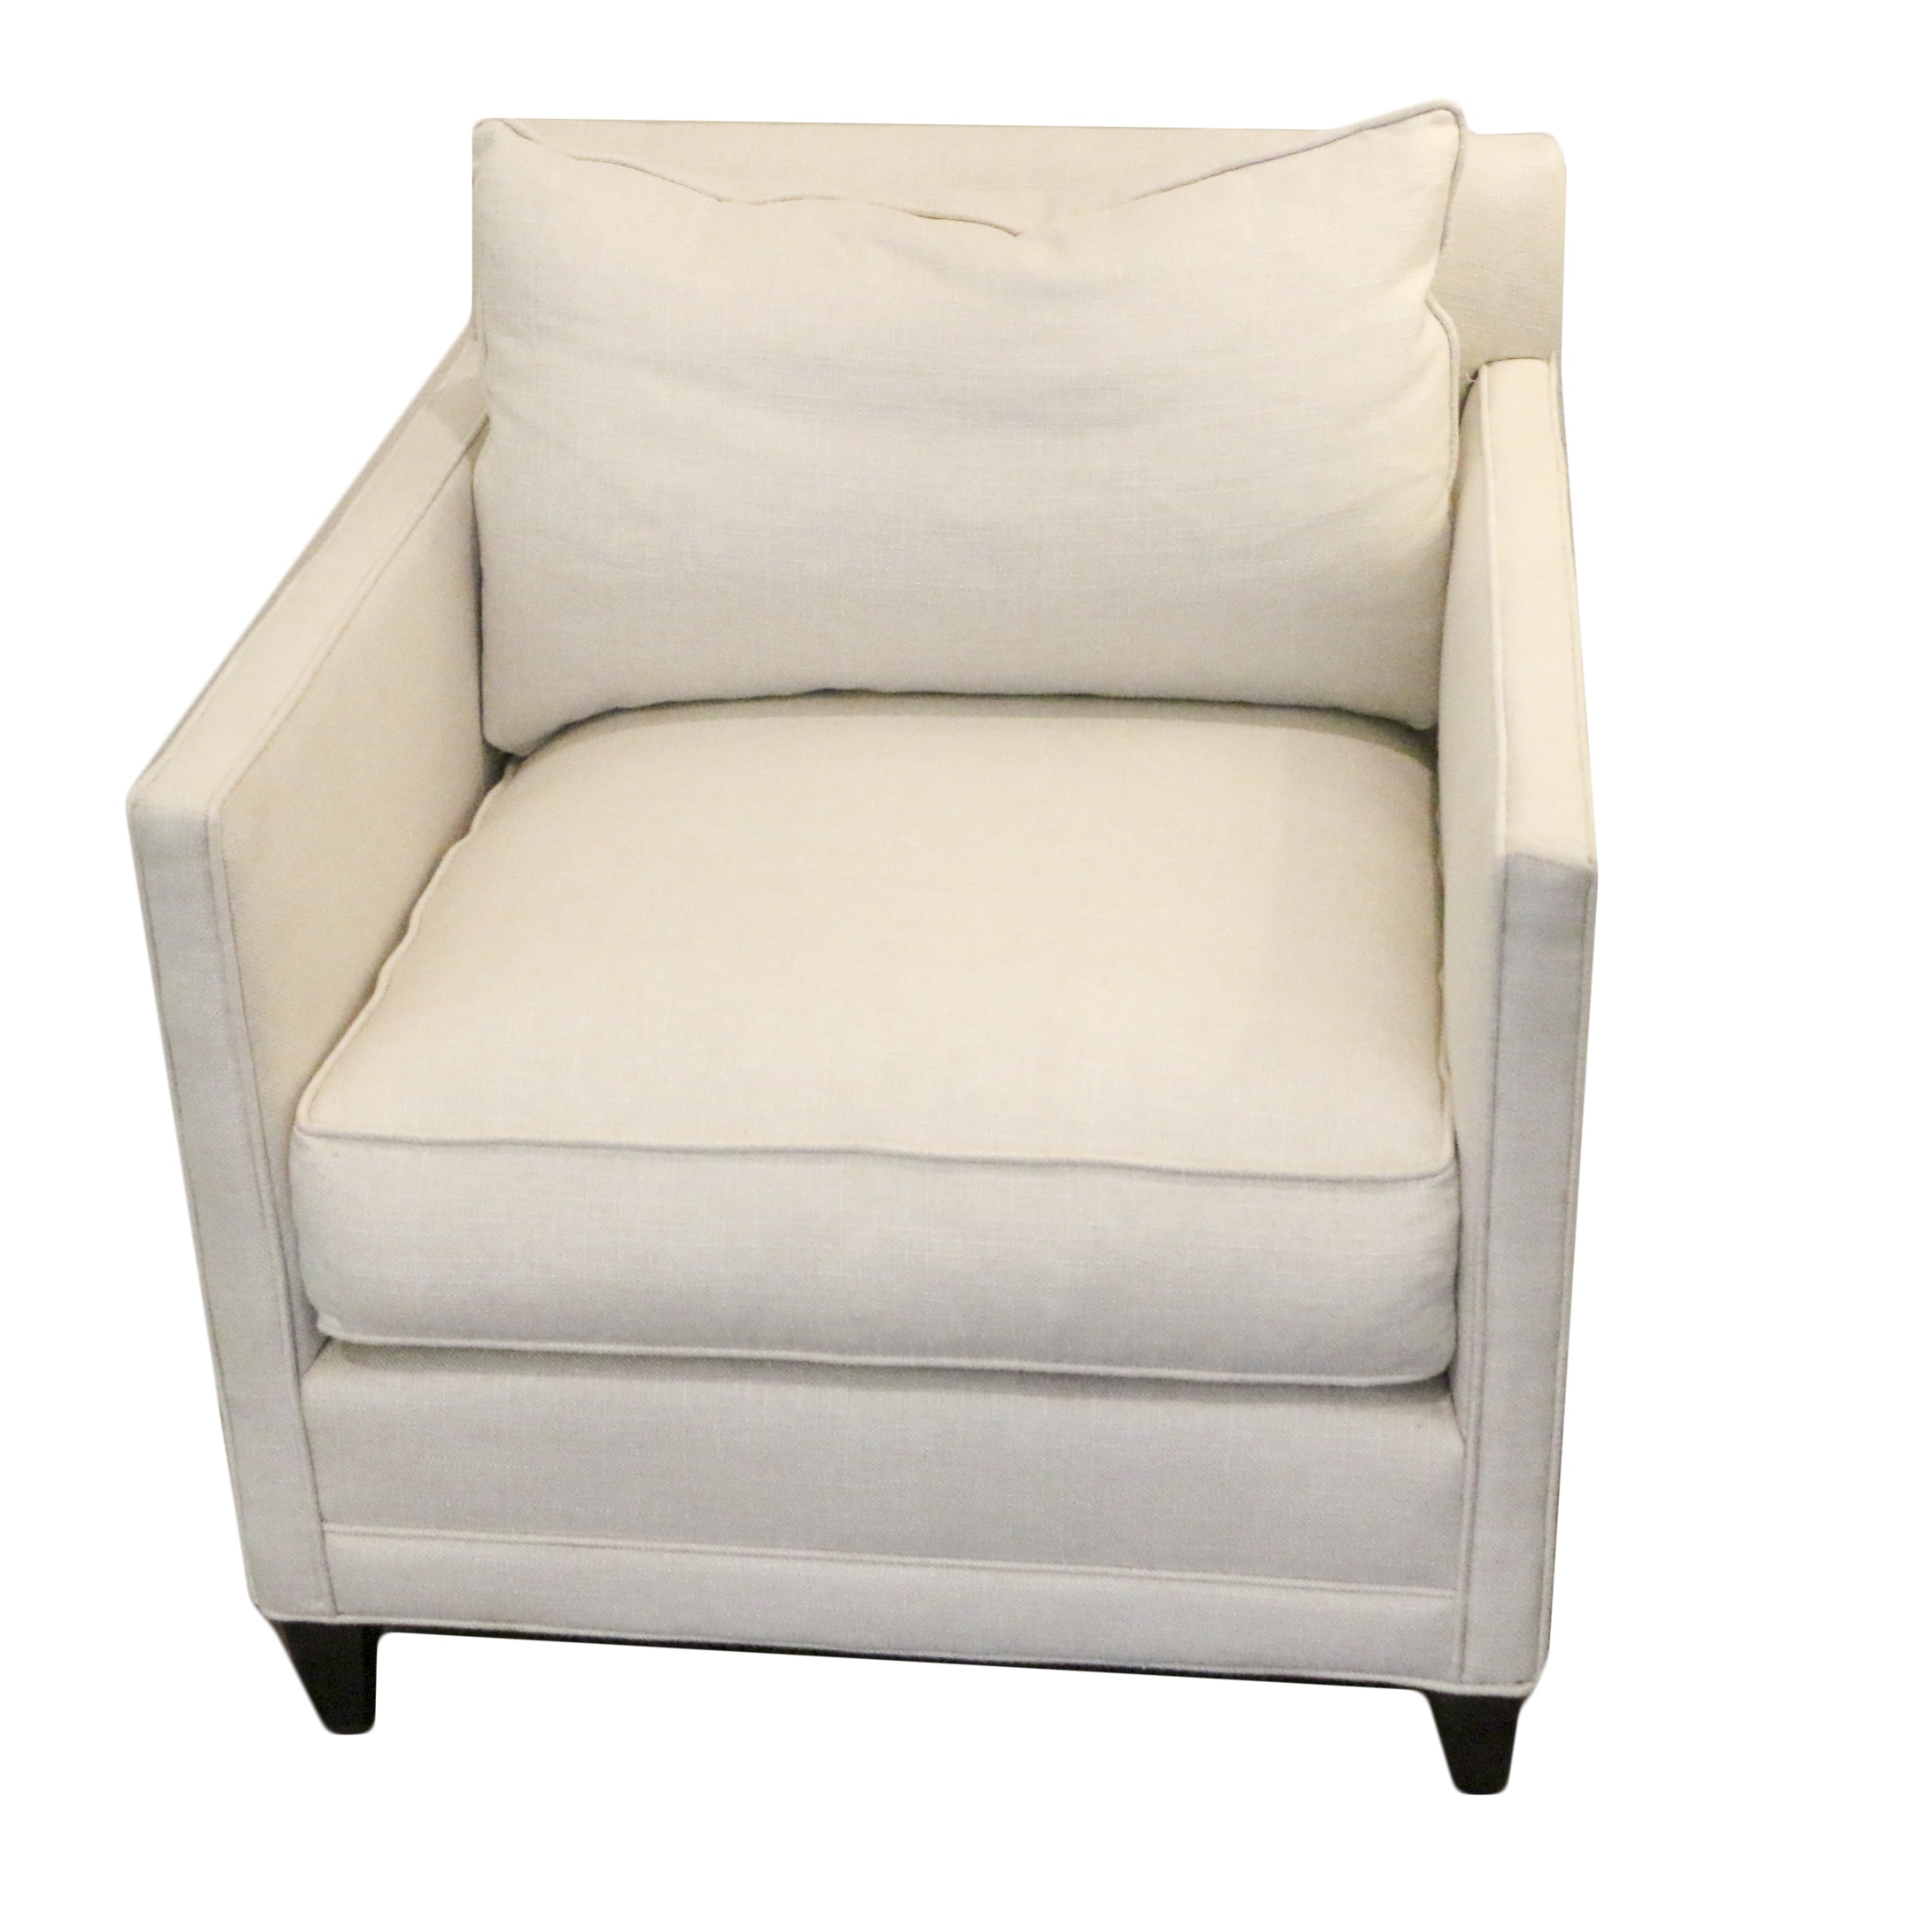 Contemporary Upholstered Armchair by Robin Bruce